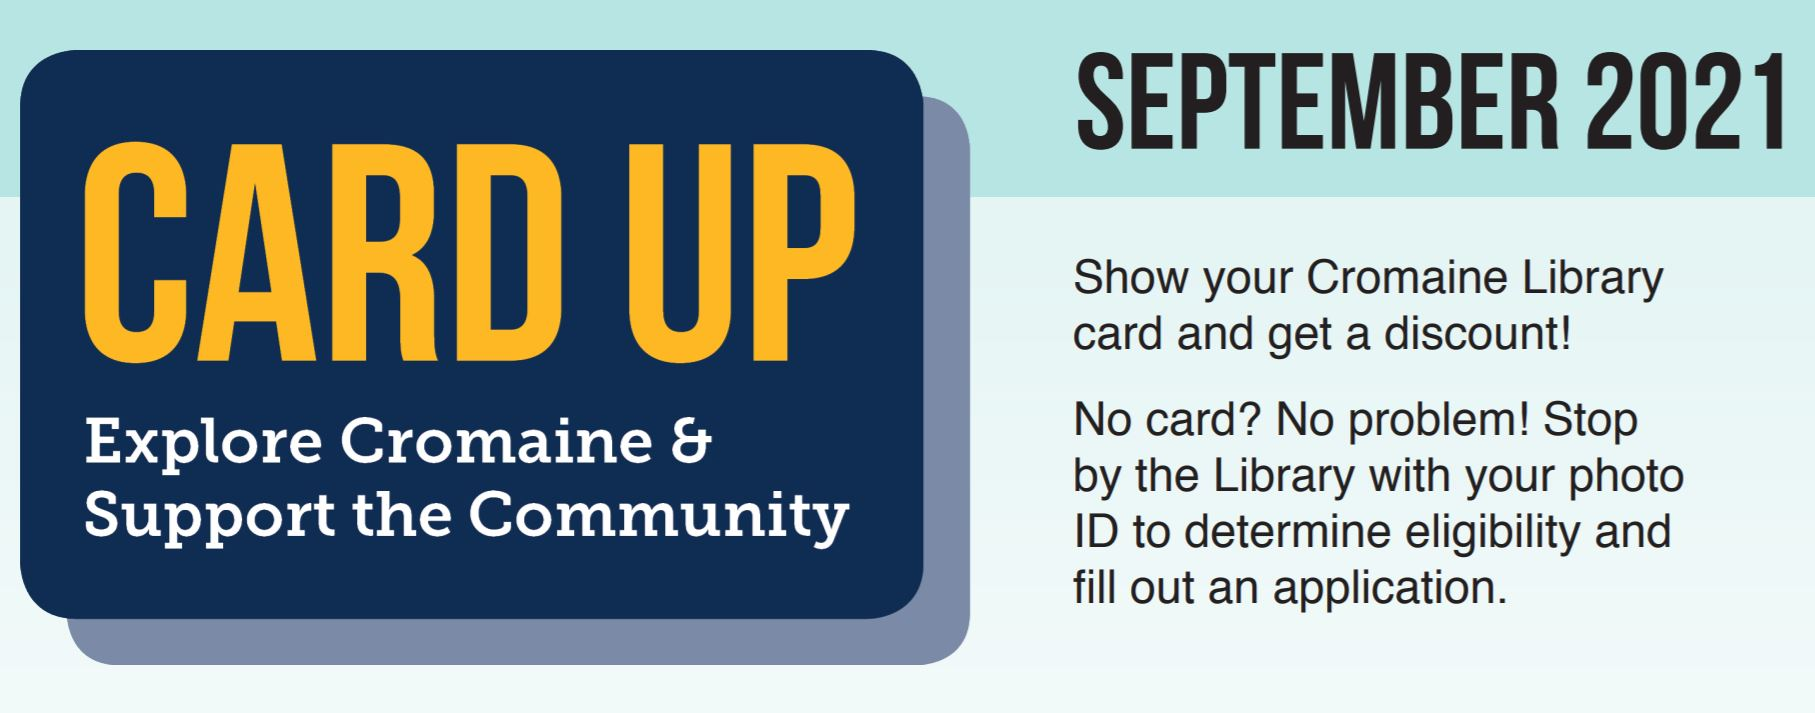 Cromaine Library Encourages Community to Card Up in September!